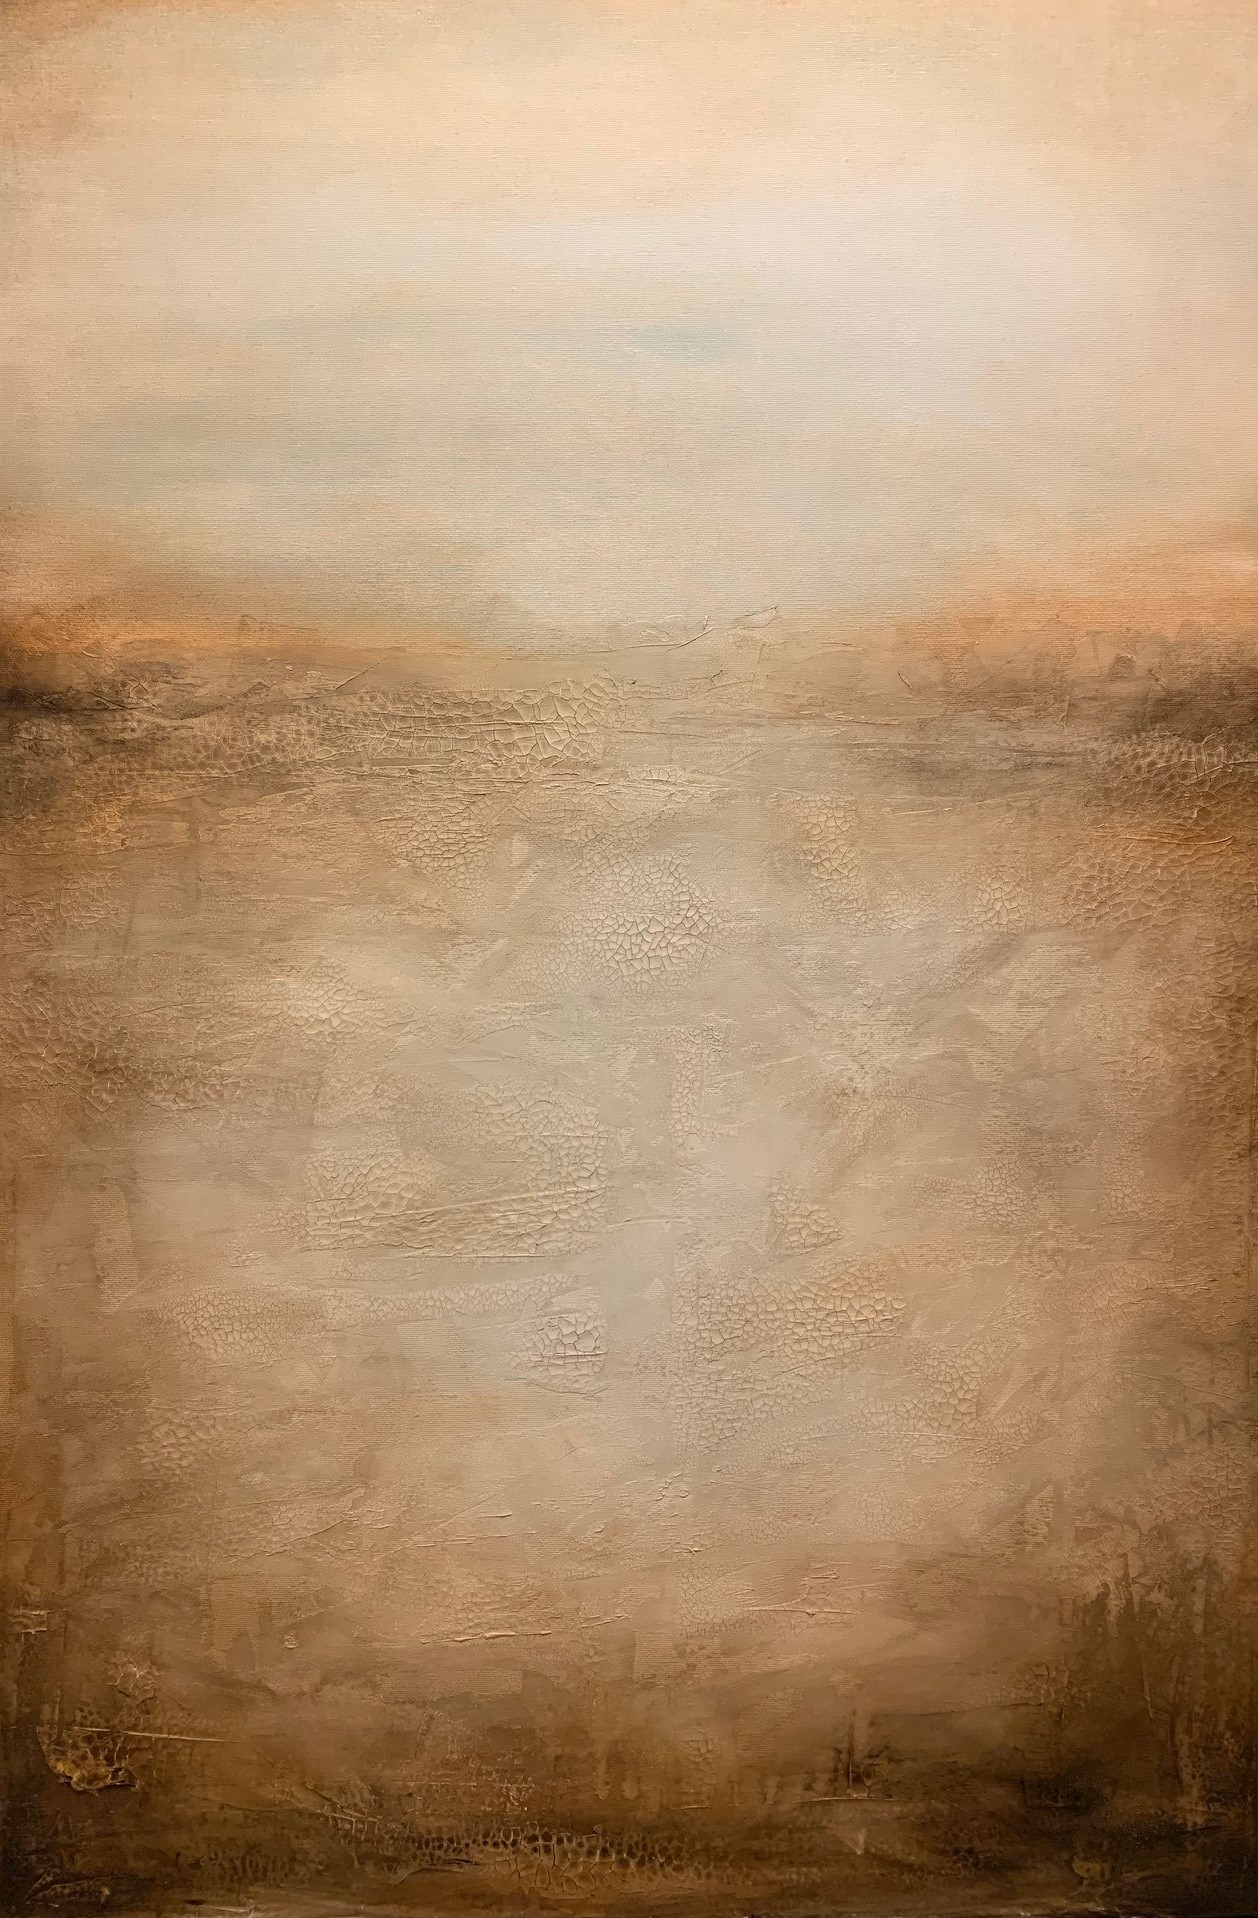 Somewhere out there_Sonja Riemer Art